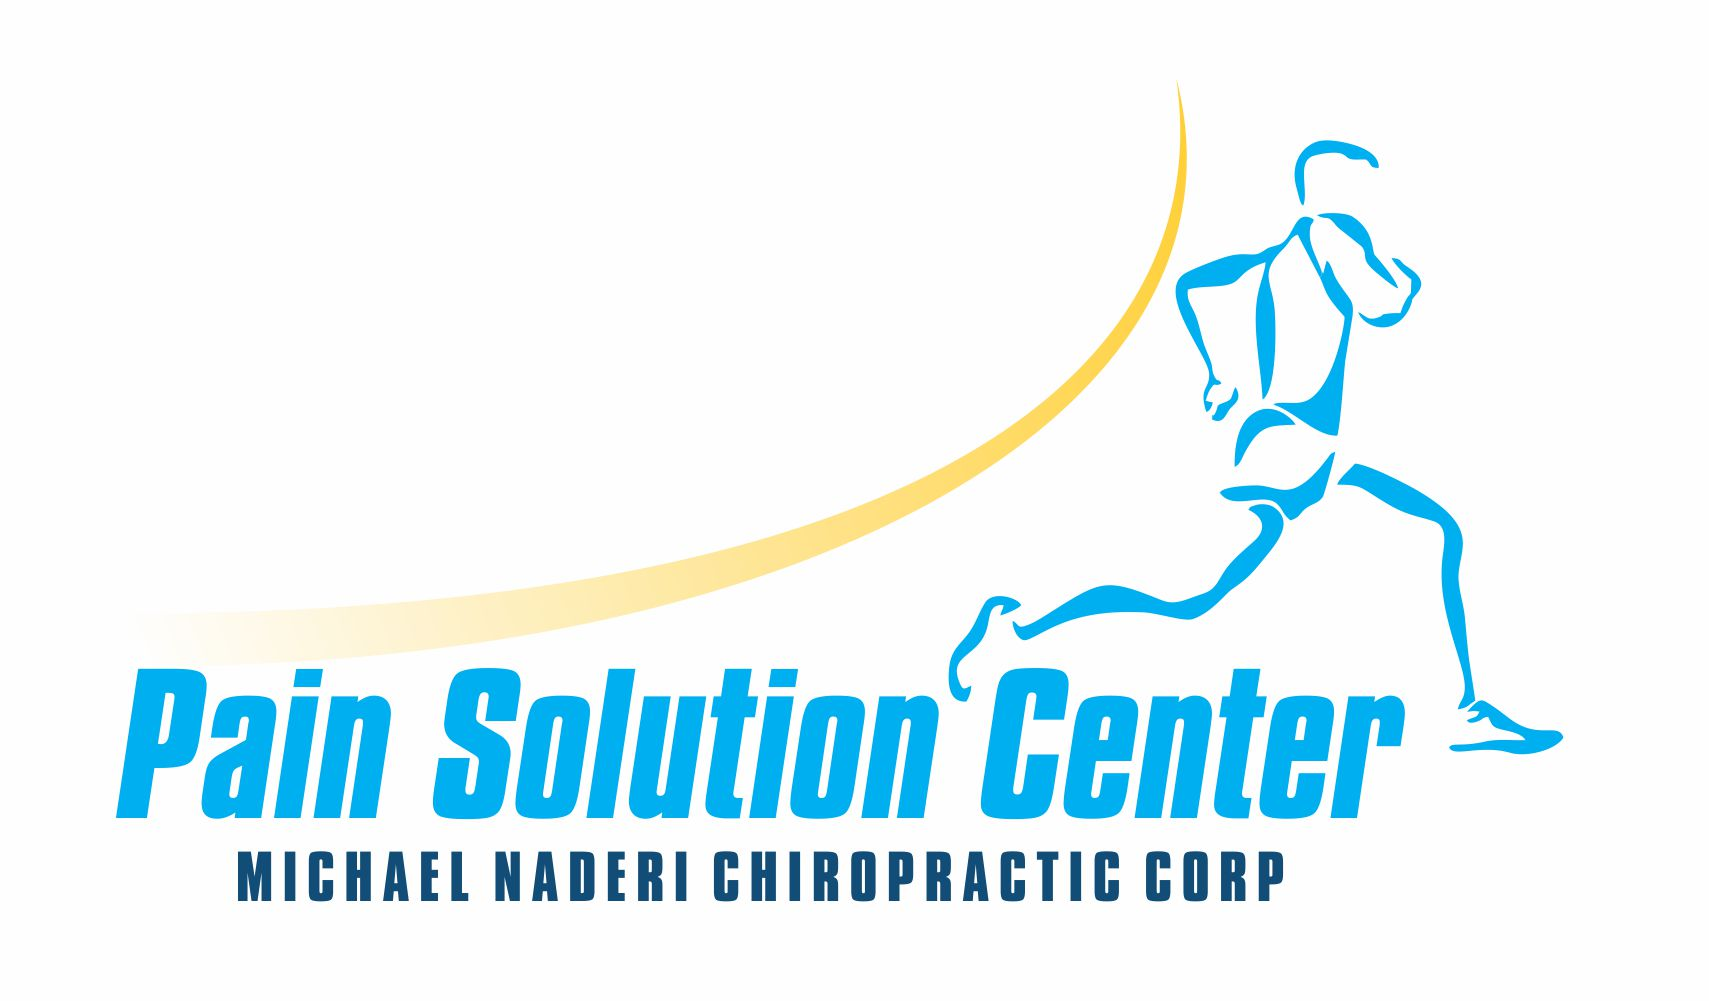 Michael Naderi Chiropractic Corp (Wilshire and Vermont)